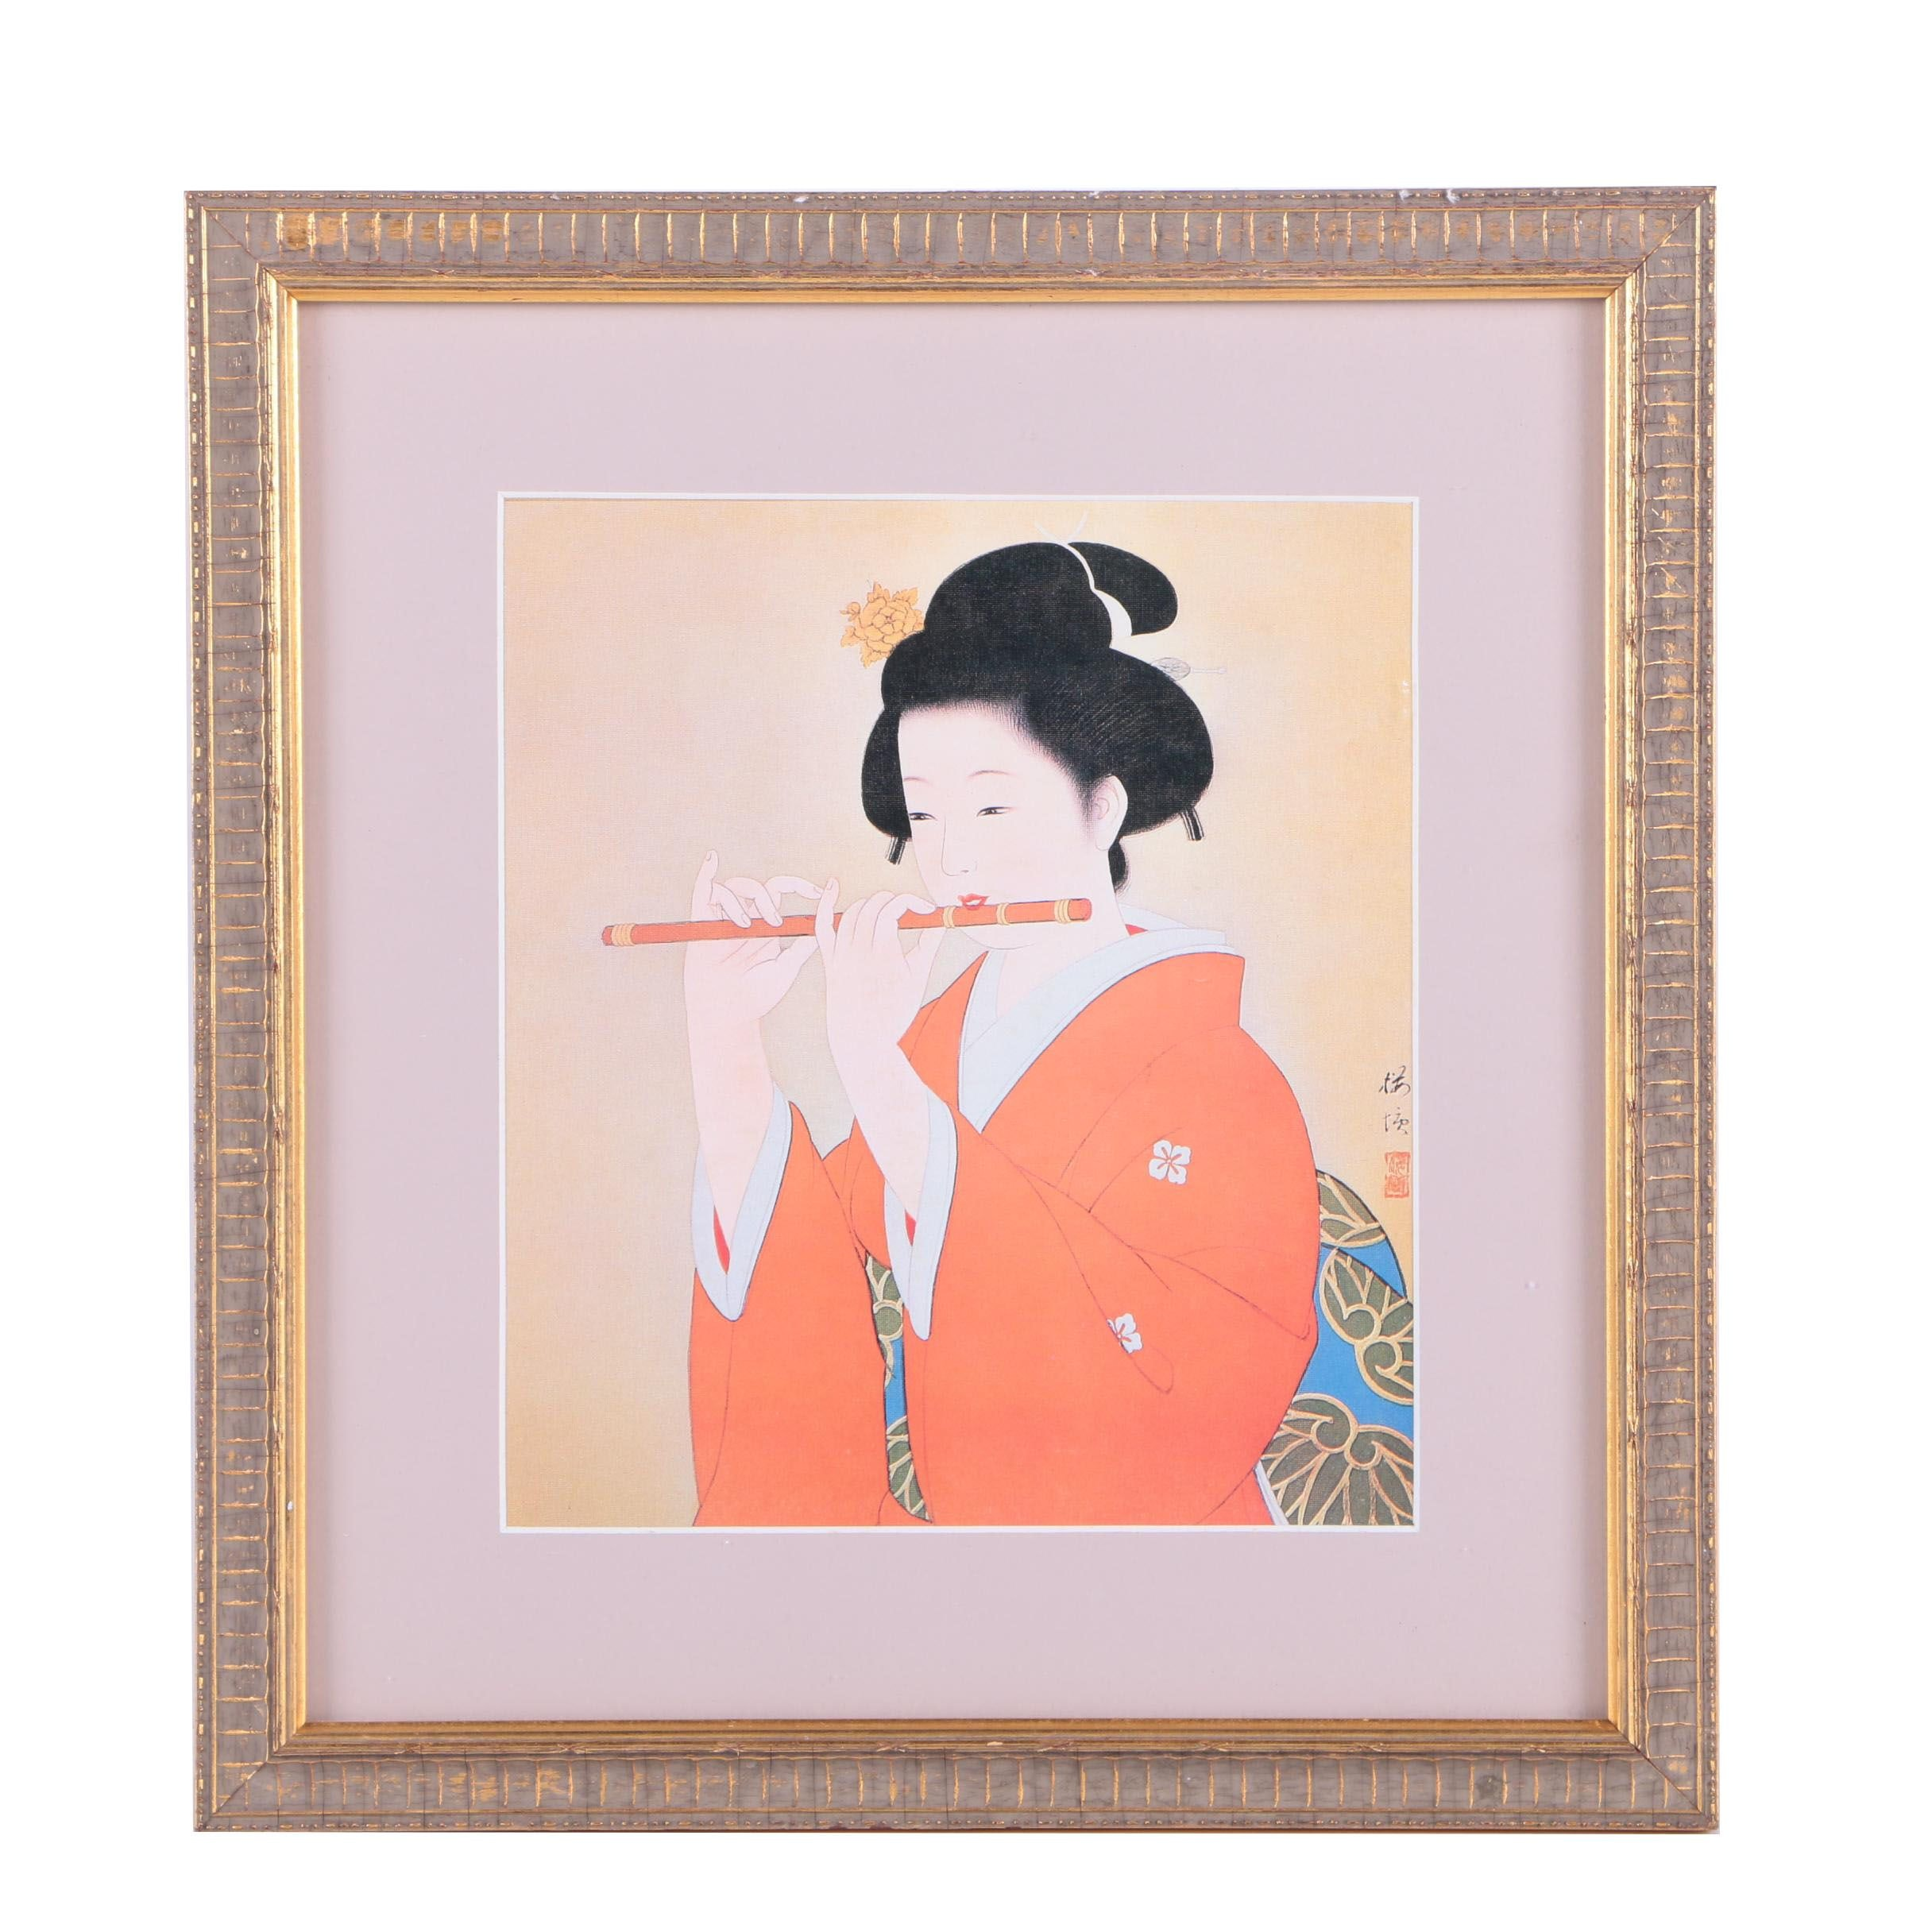 East Asian Style Offset Lithograph on Canvas of Woman Playing Flute